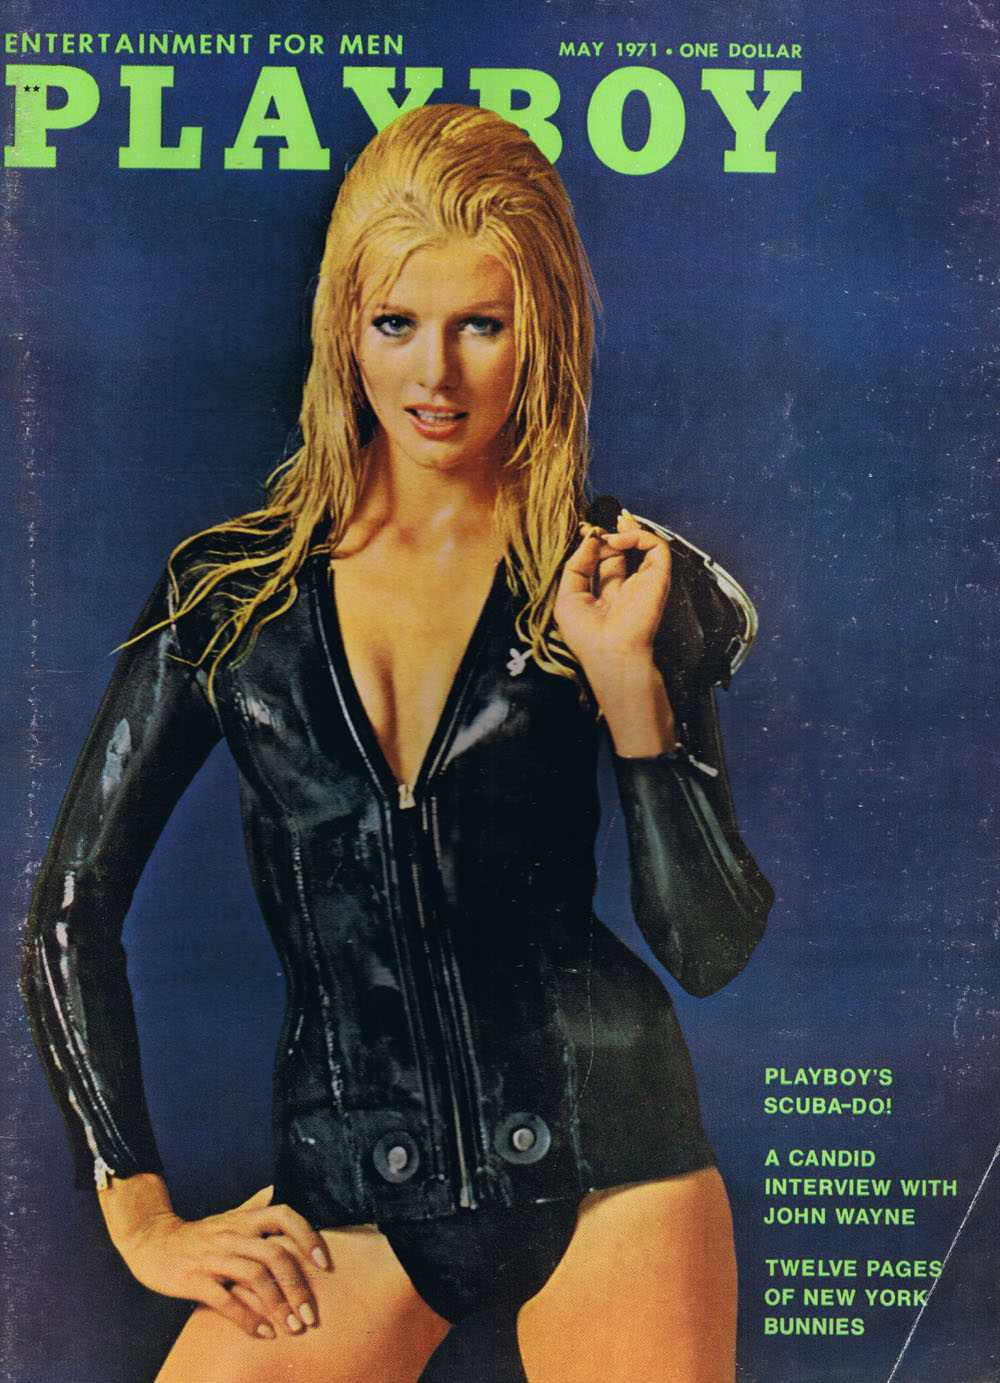 Cover of  Playboy , May 1971 featuring the John Wayne interview.